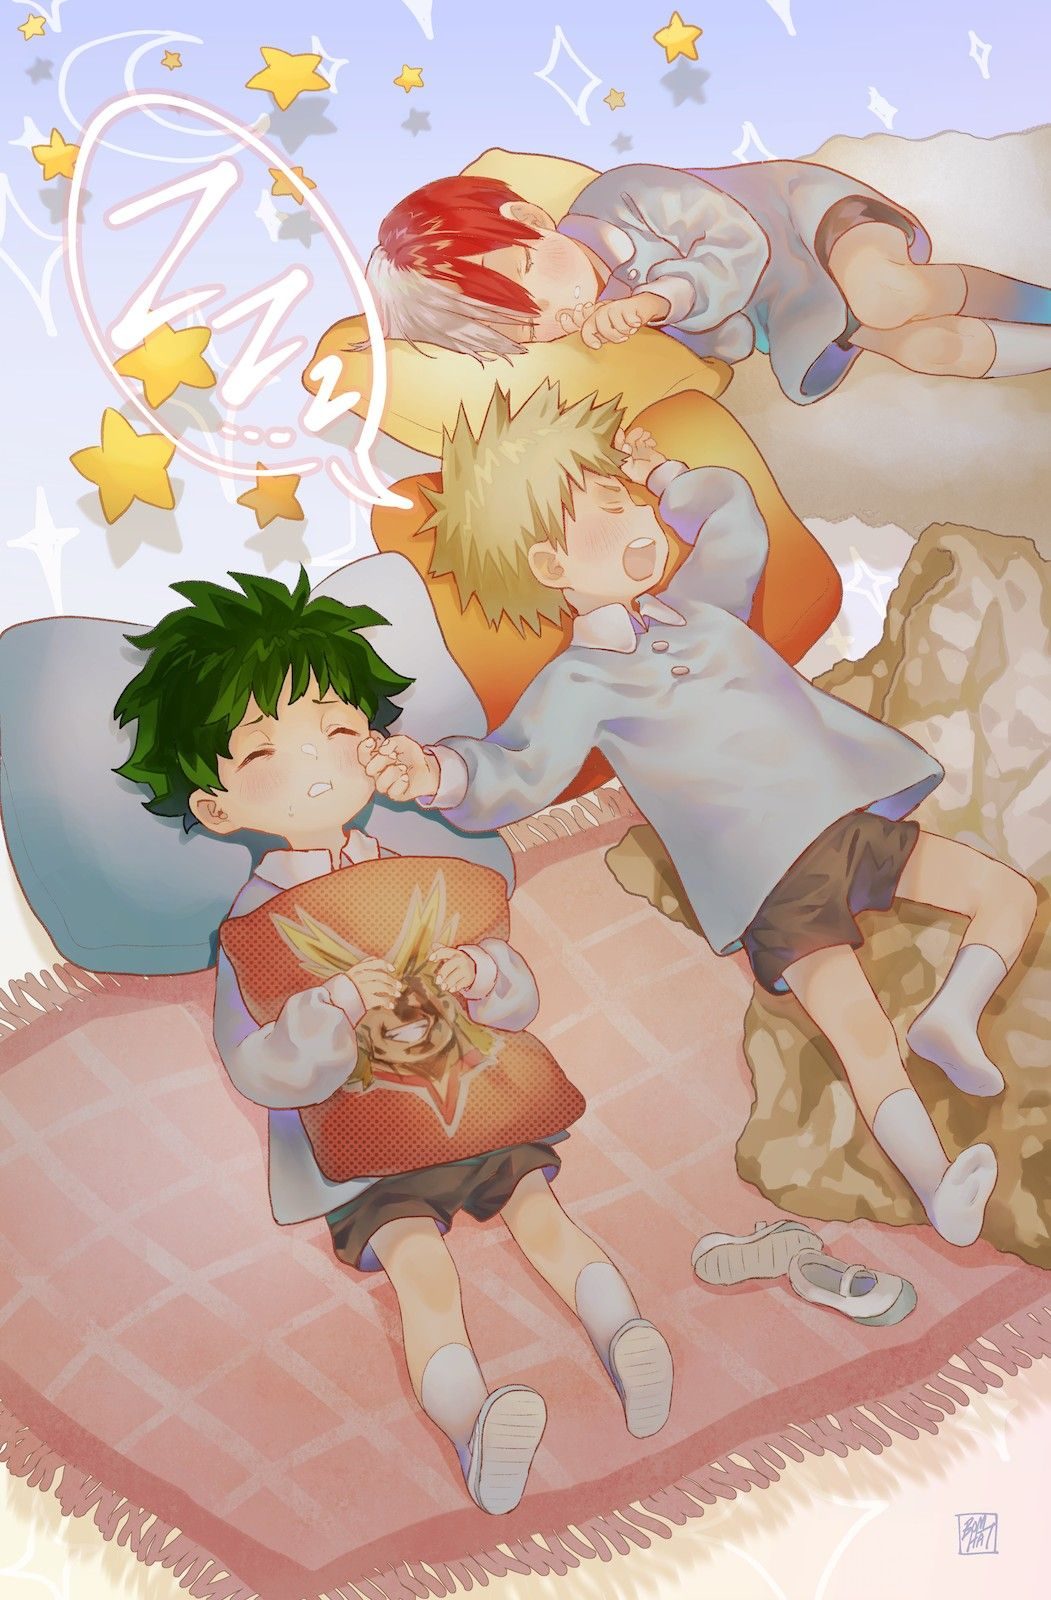 Si No Quieres Que Publique Tu Pin Dimelo Y Lo Borro If You Do Not Want Me To Publish Your Pin Tell Me And Delete My Hero Academia Episodes Hero Wallpaper Hero